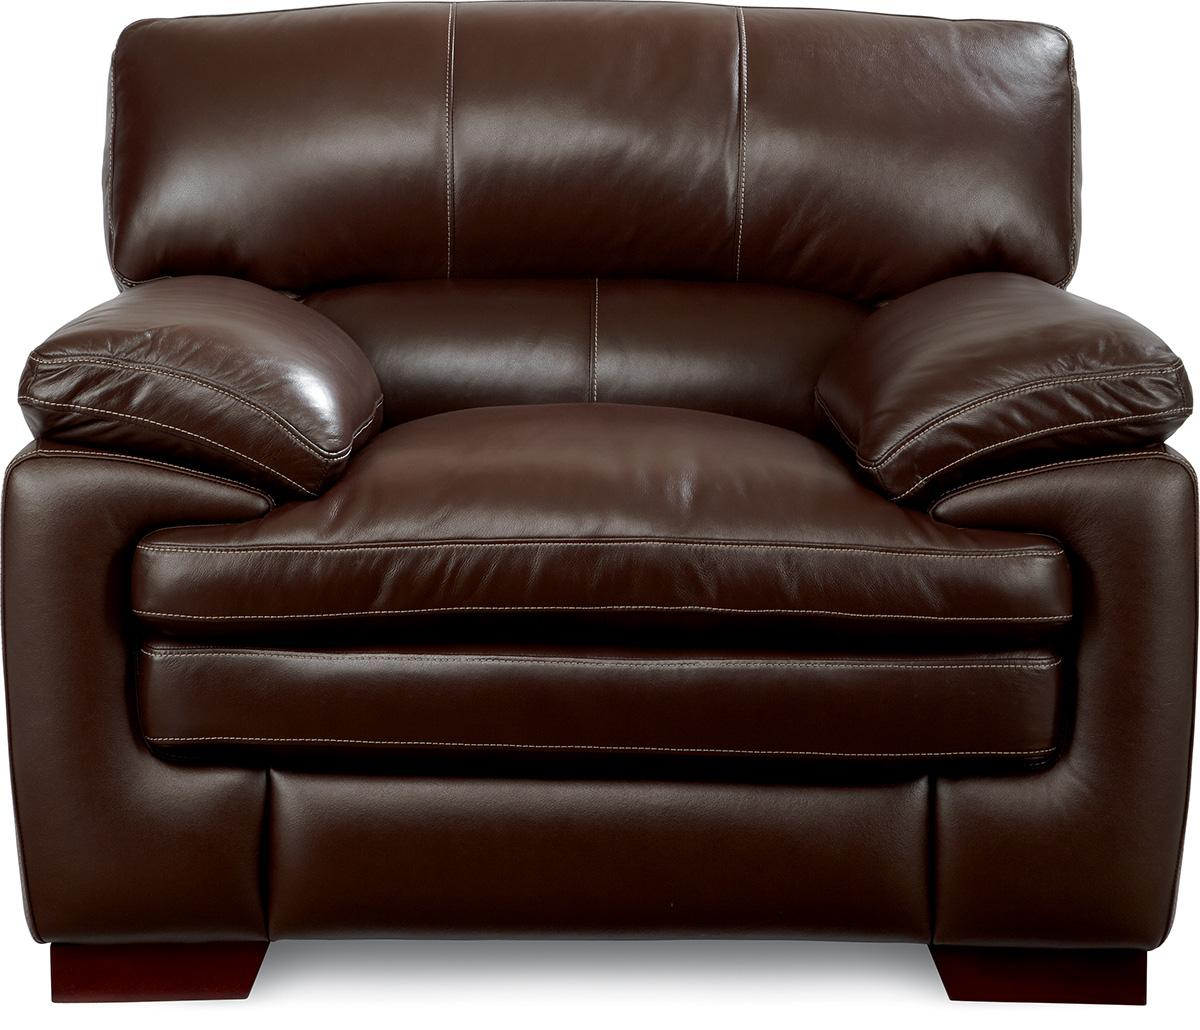 Casual Stationary Chair with Pillow Top Seat and Arms